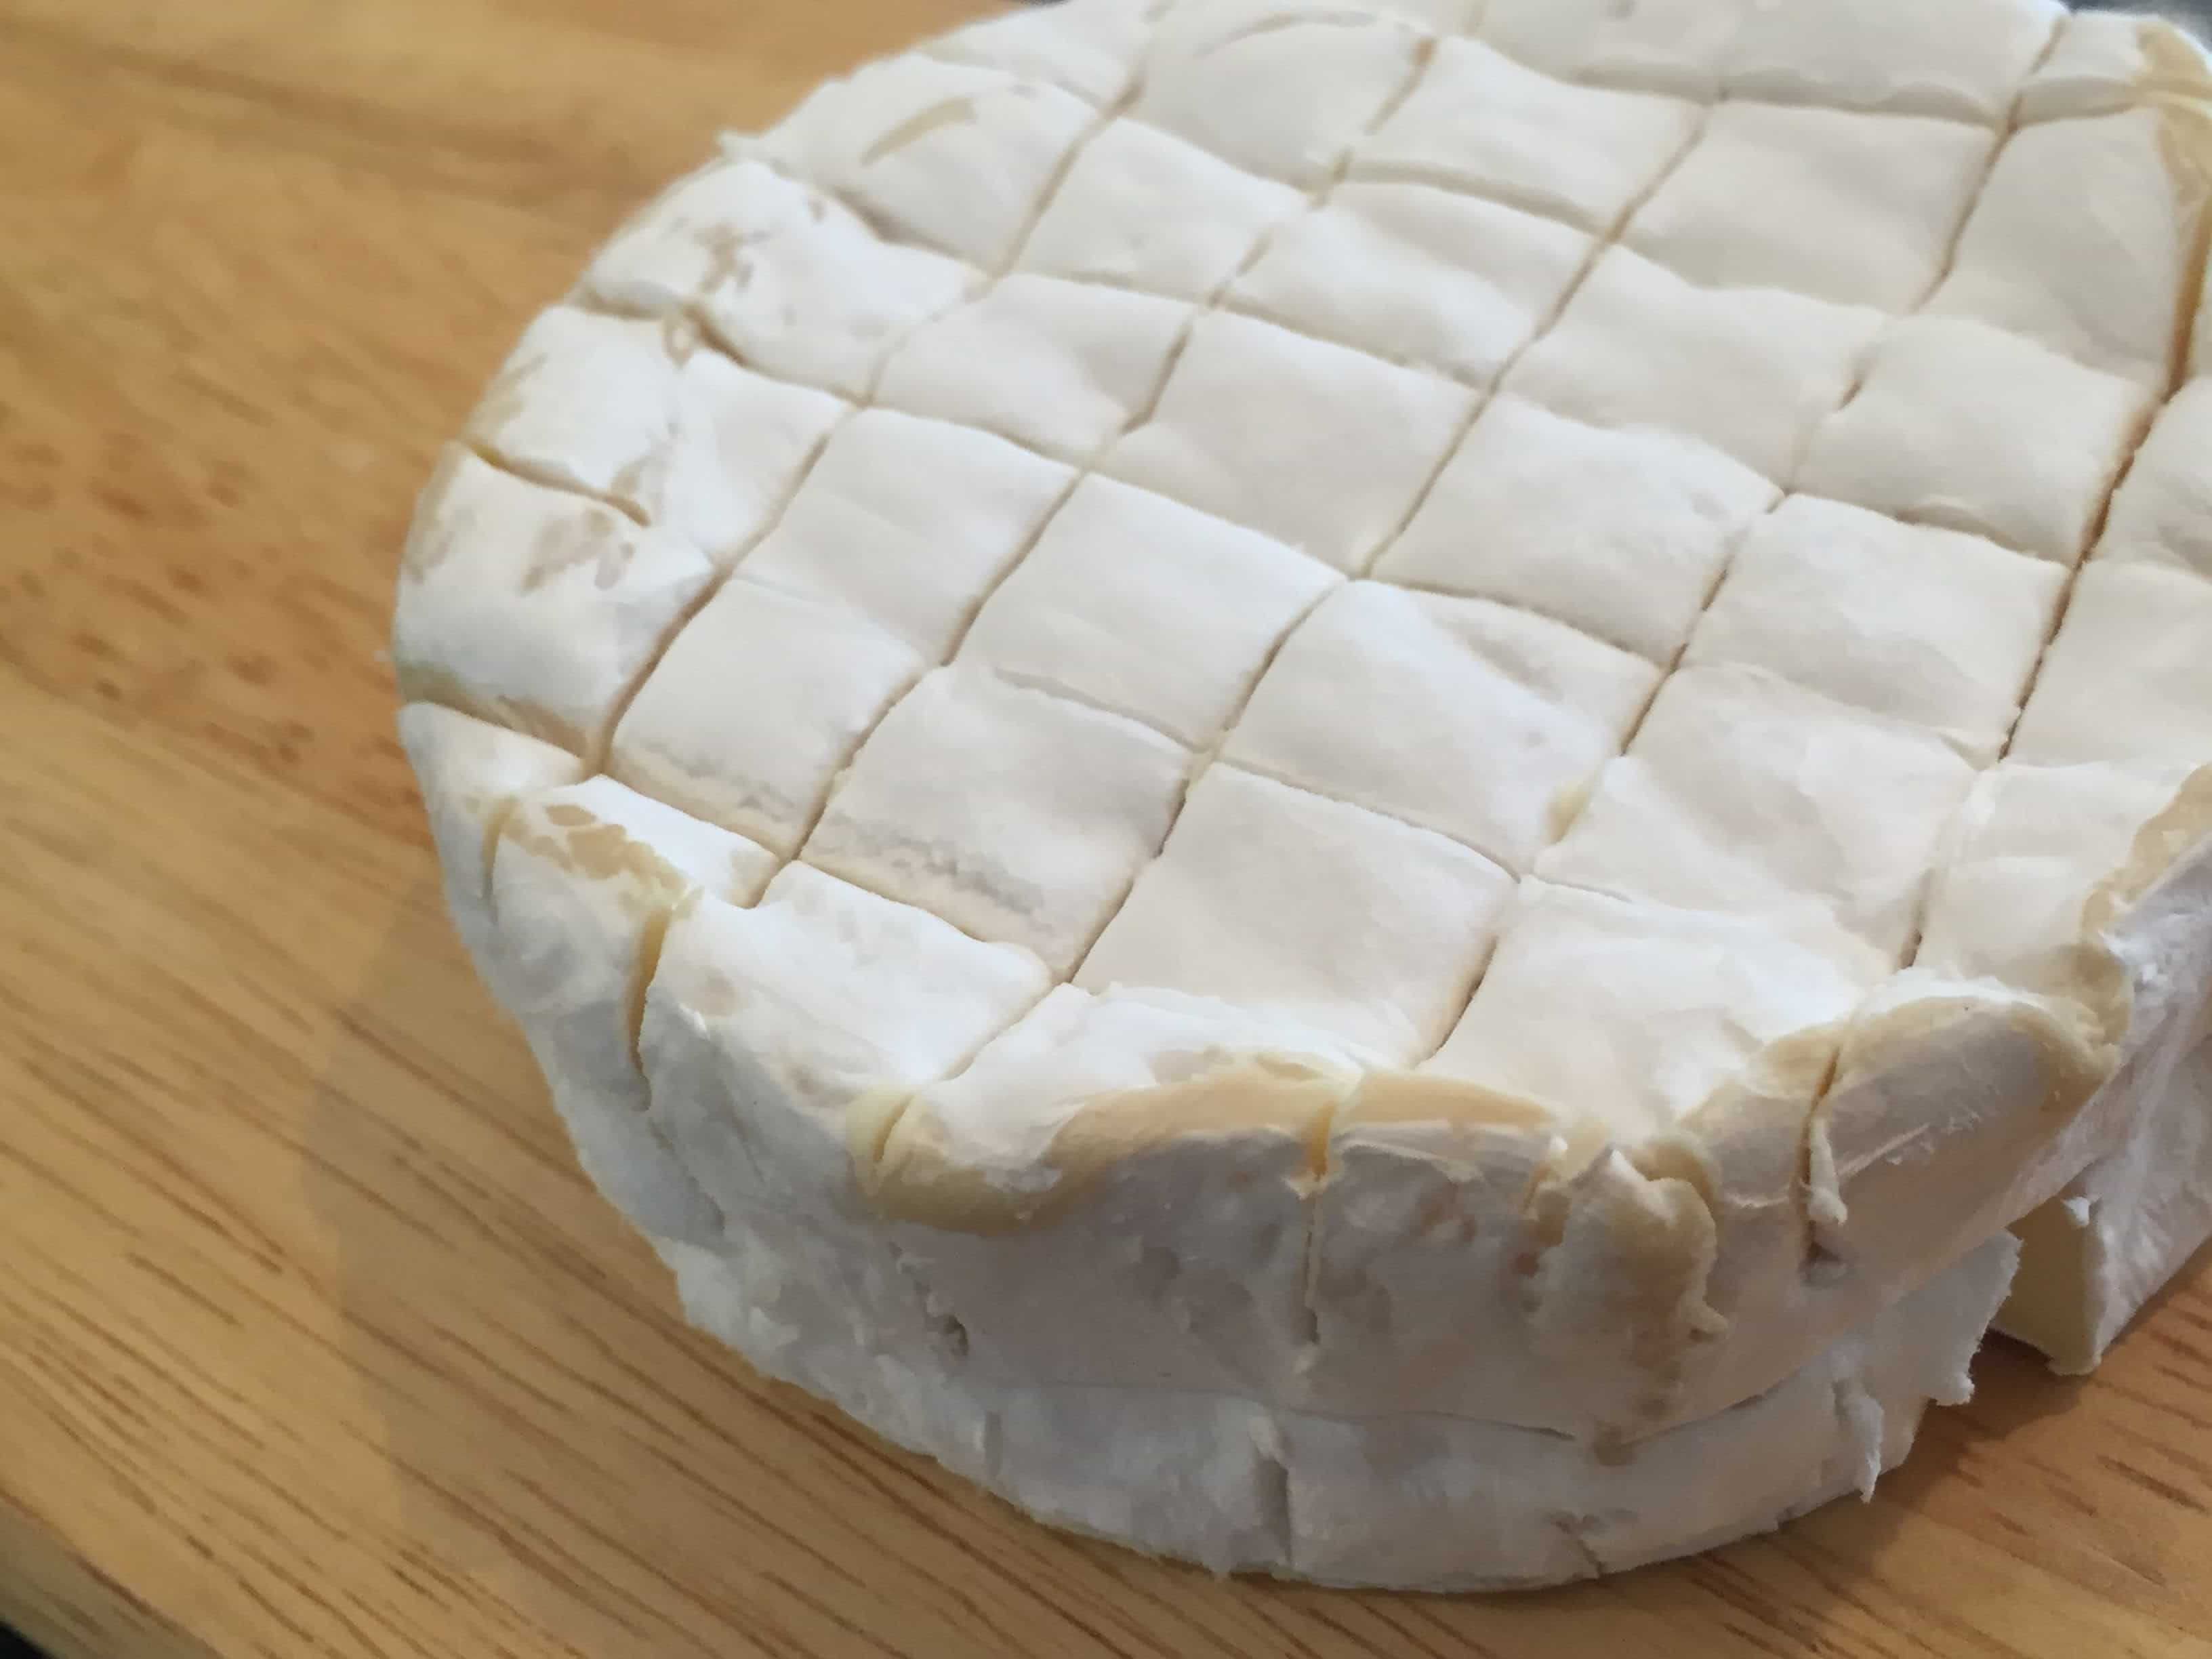 How To Score Brie